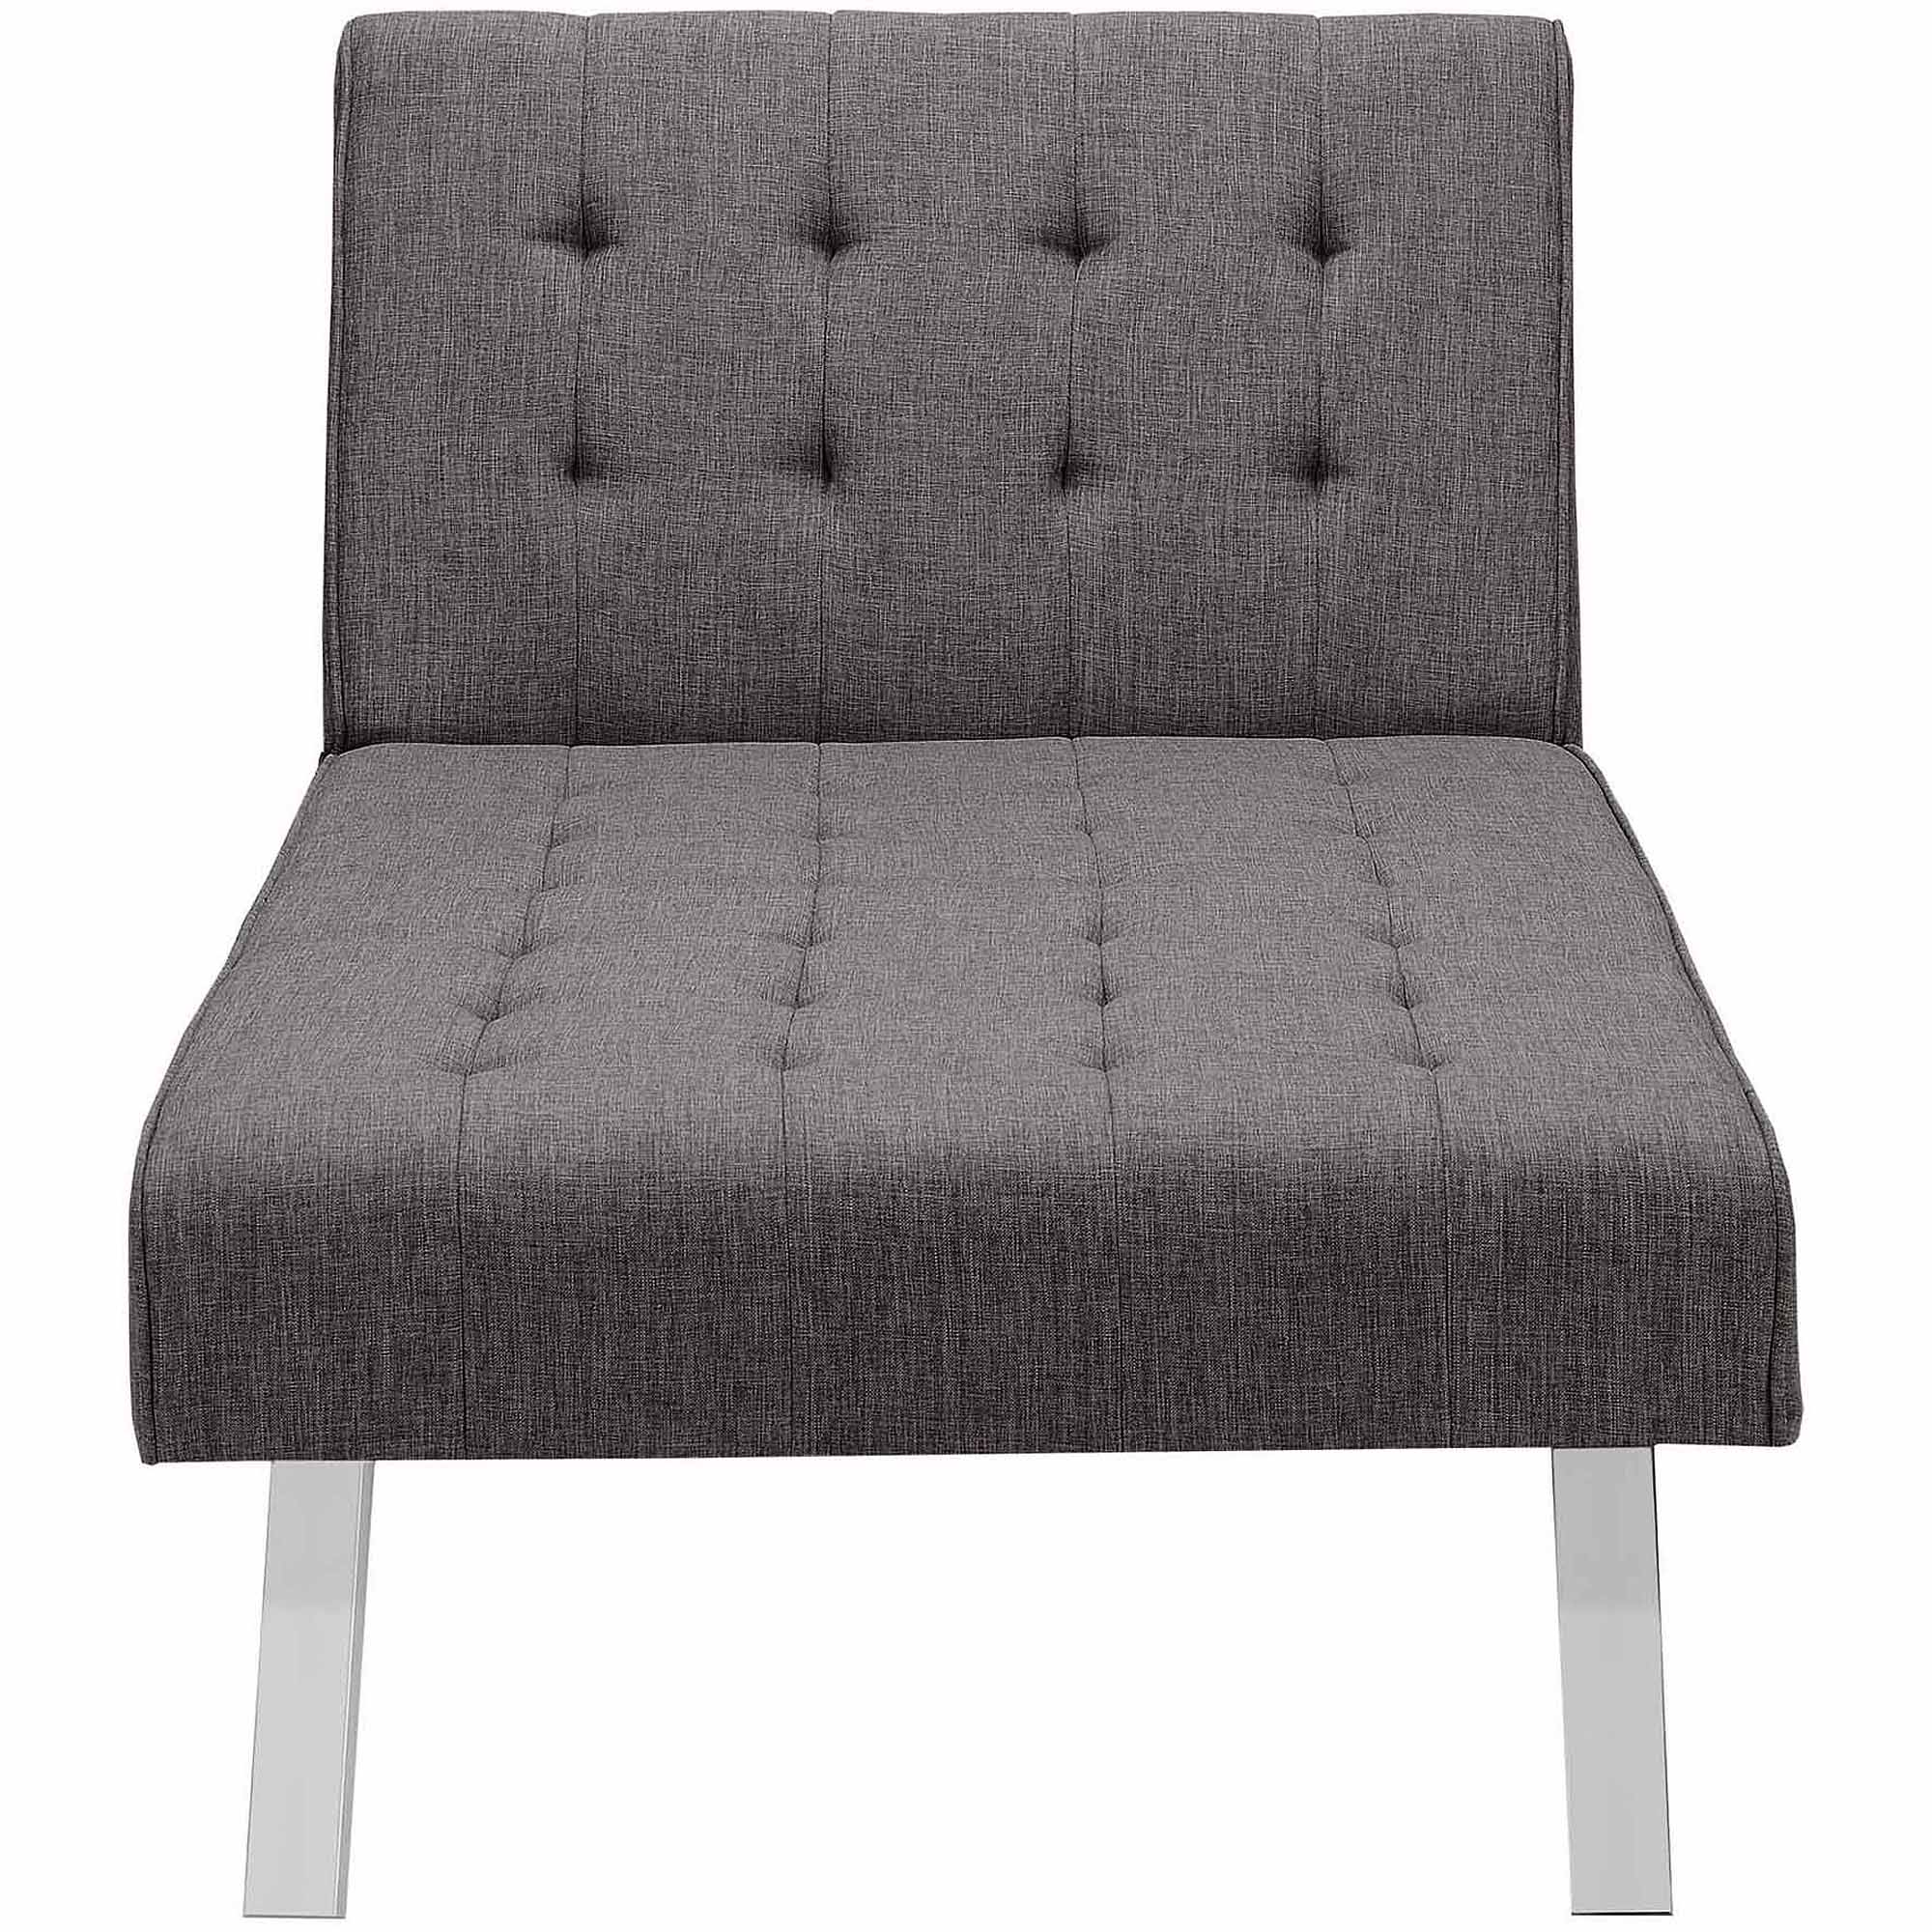 accent chairs under 150 2 pool lowes living room - walmart.com